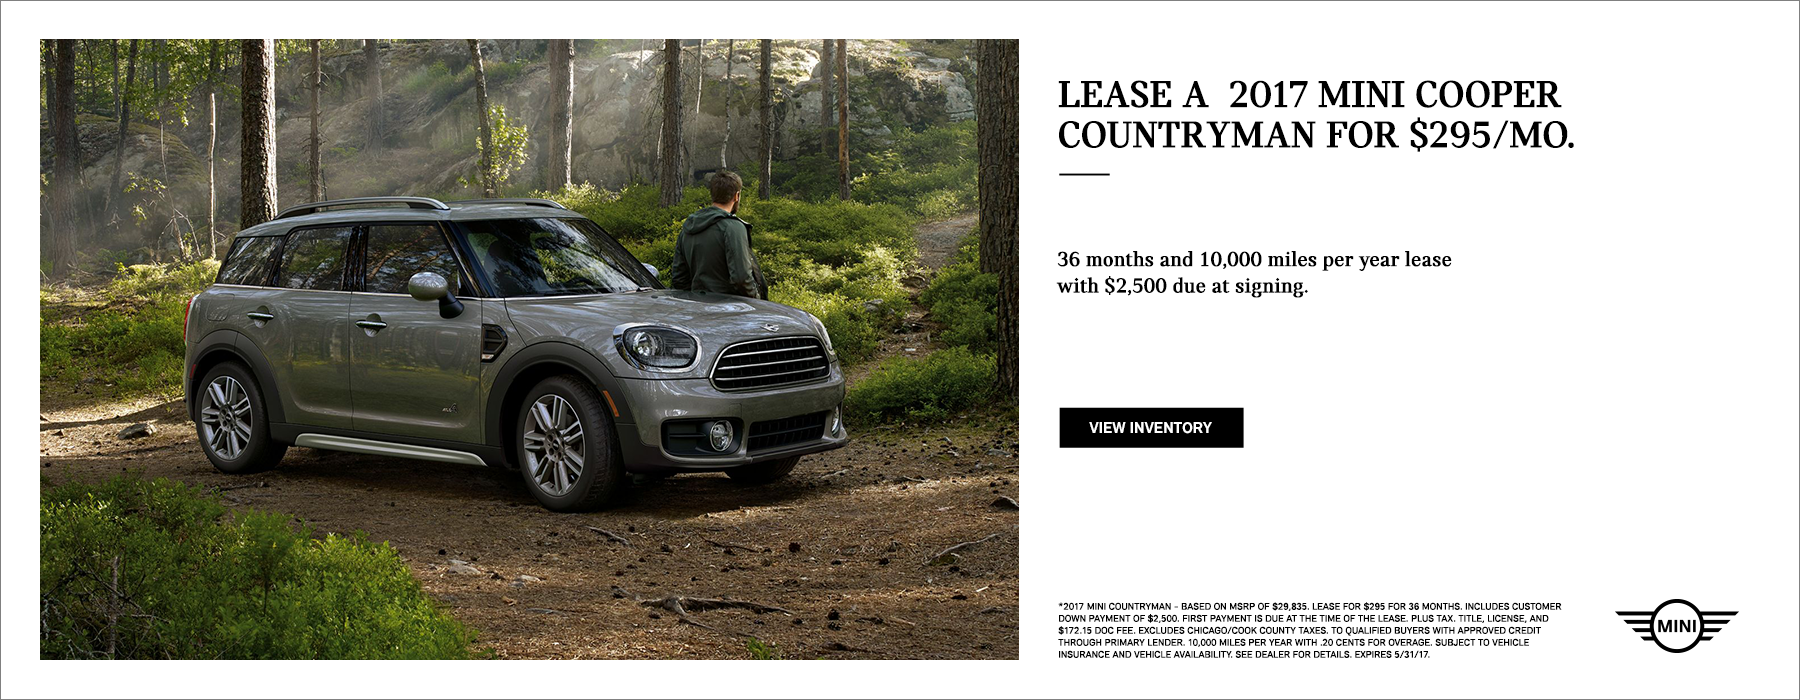 Bill_Jacobs_2017Countryman_Lease